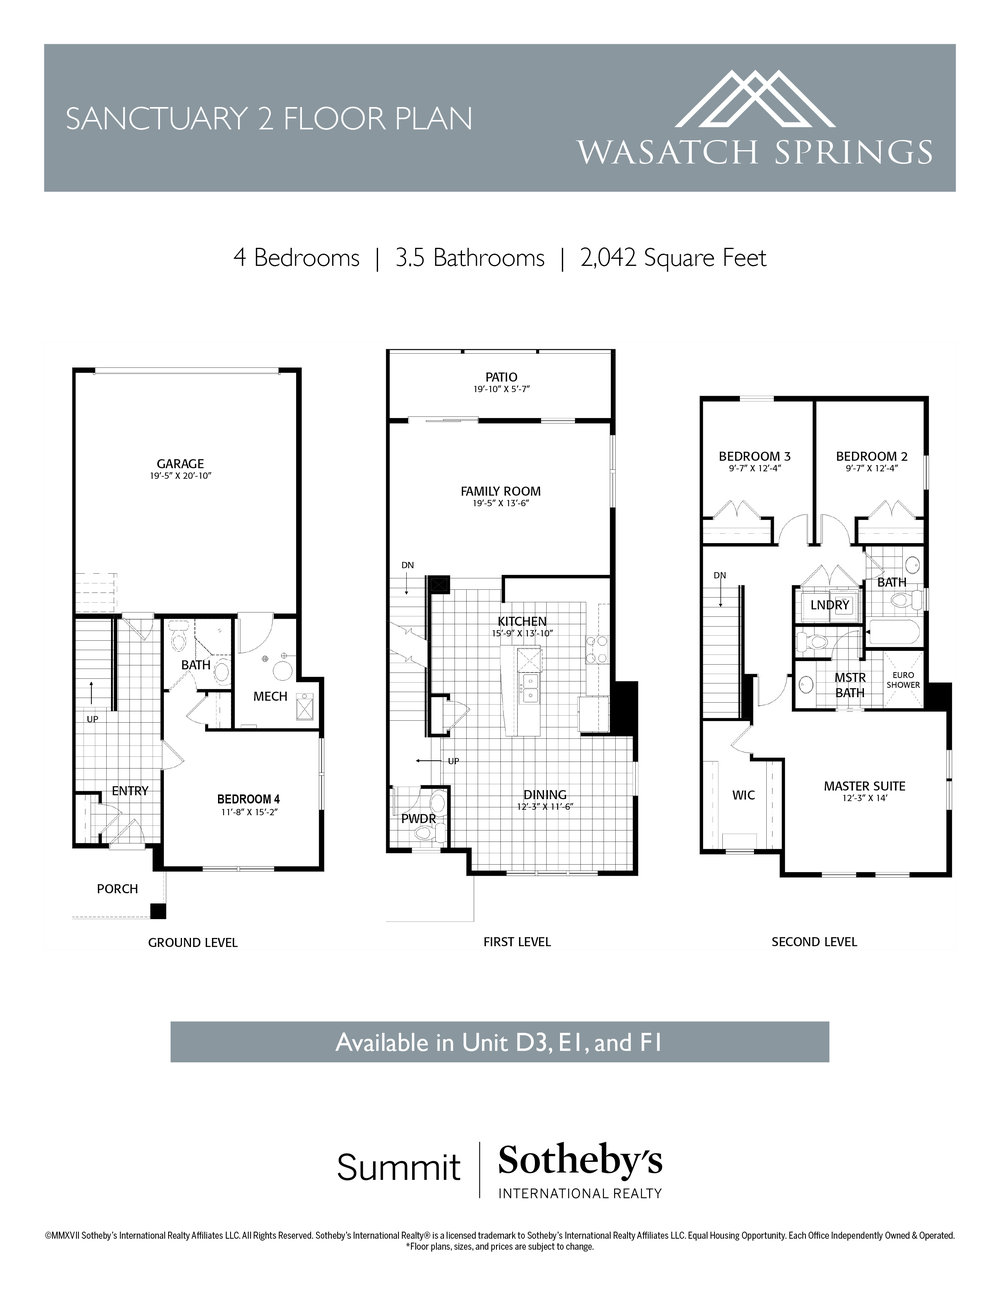 Wasatch Springs Inserts - Sanctuary 2 Floorplan.jpg